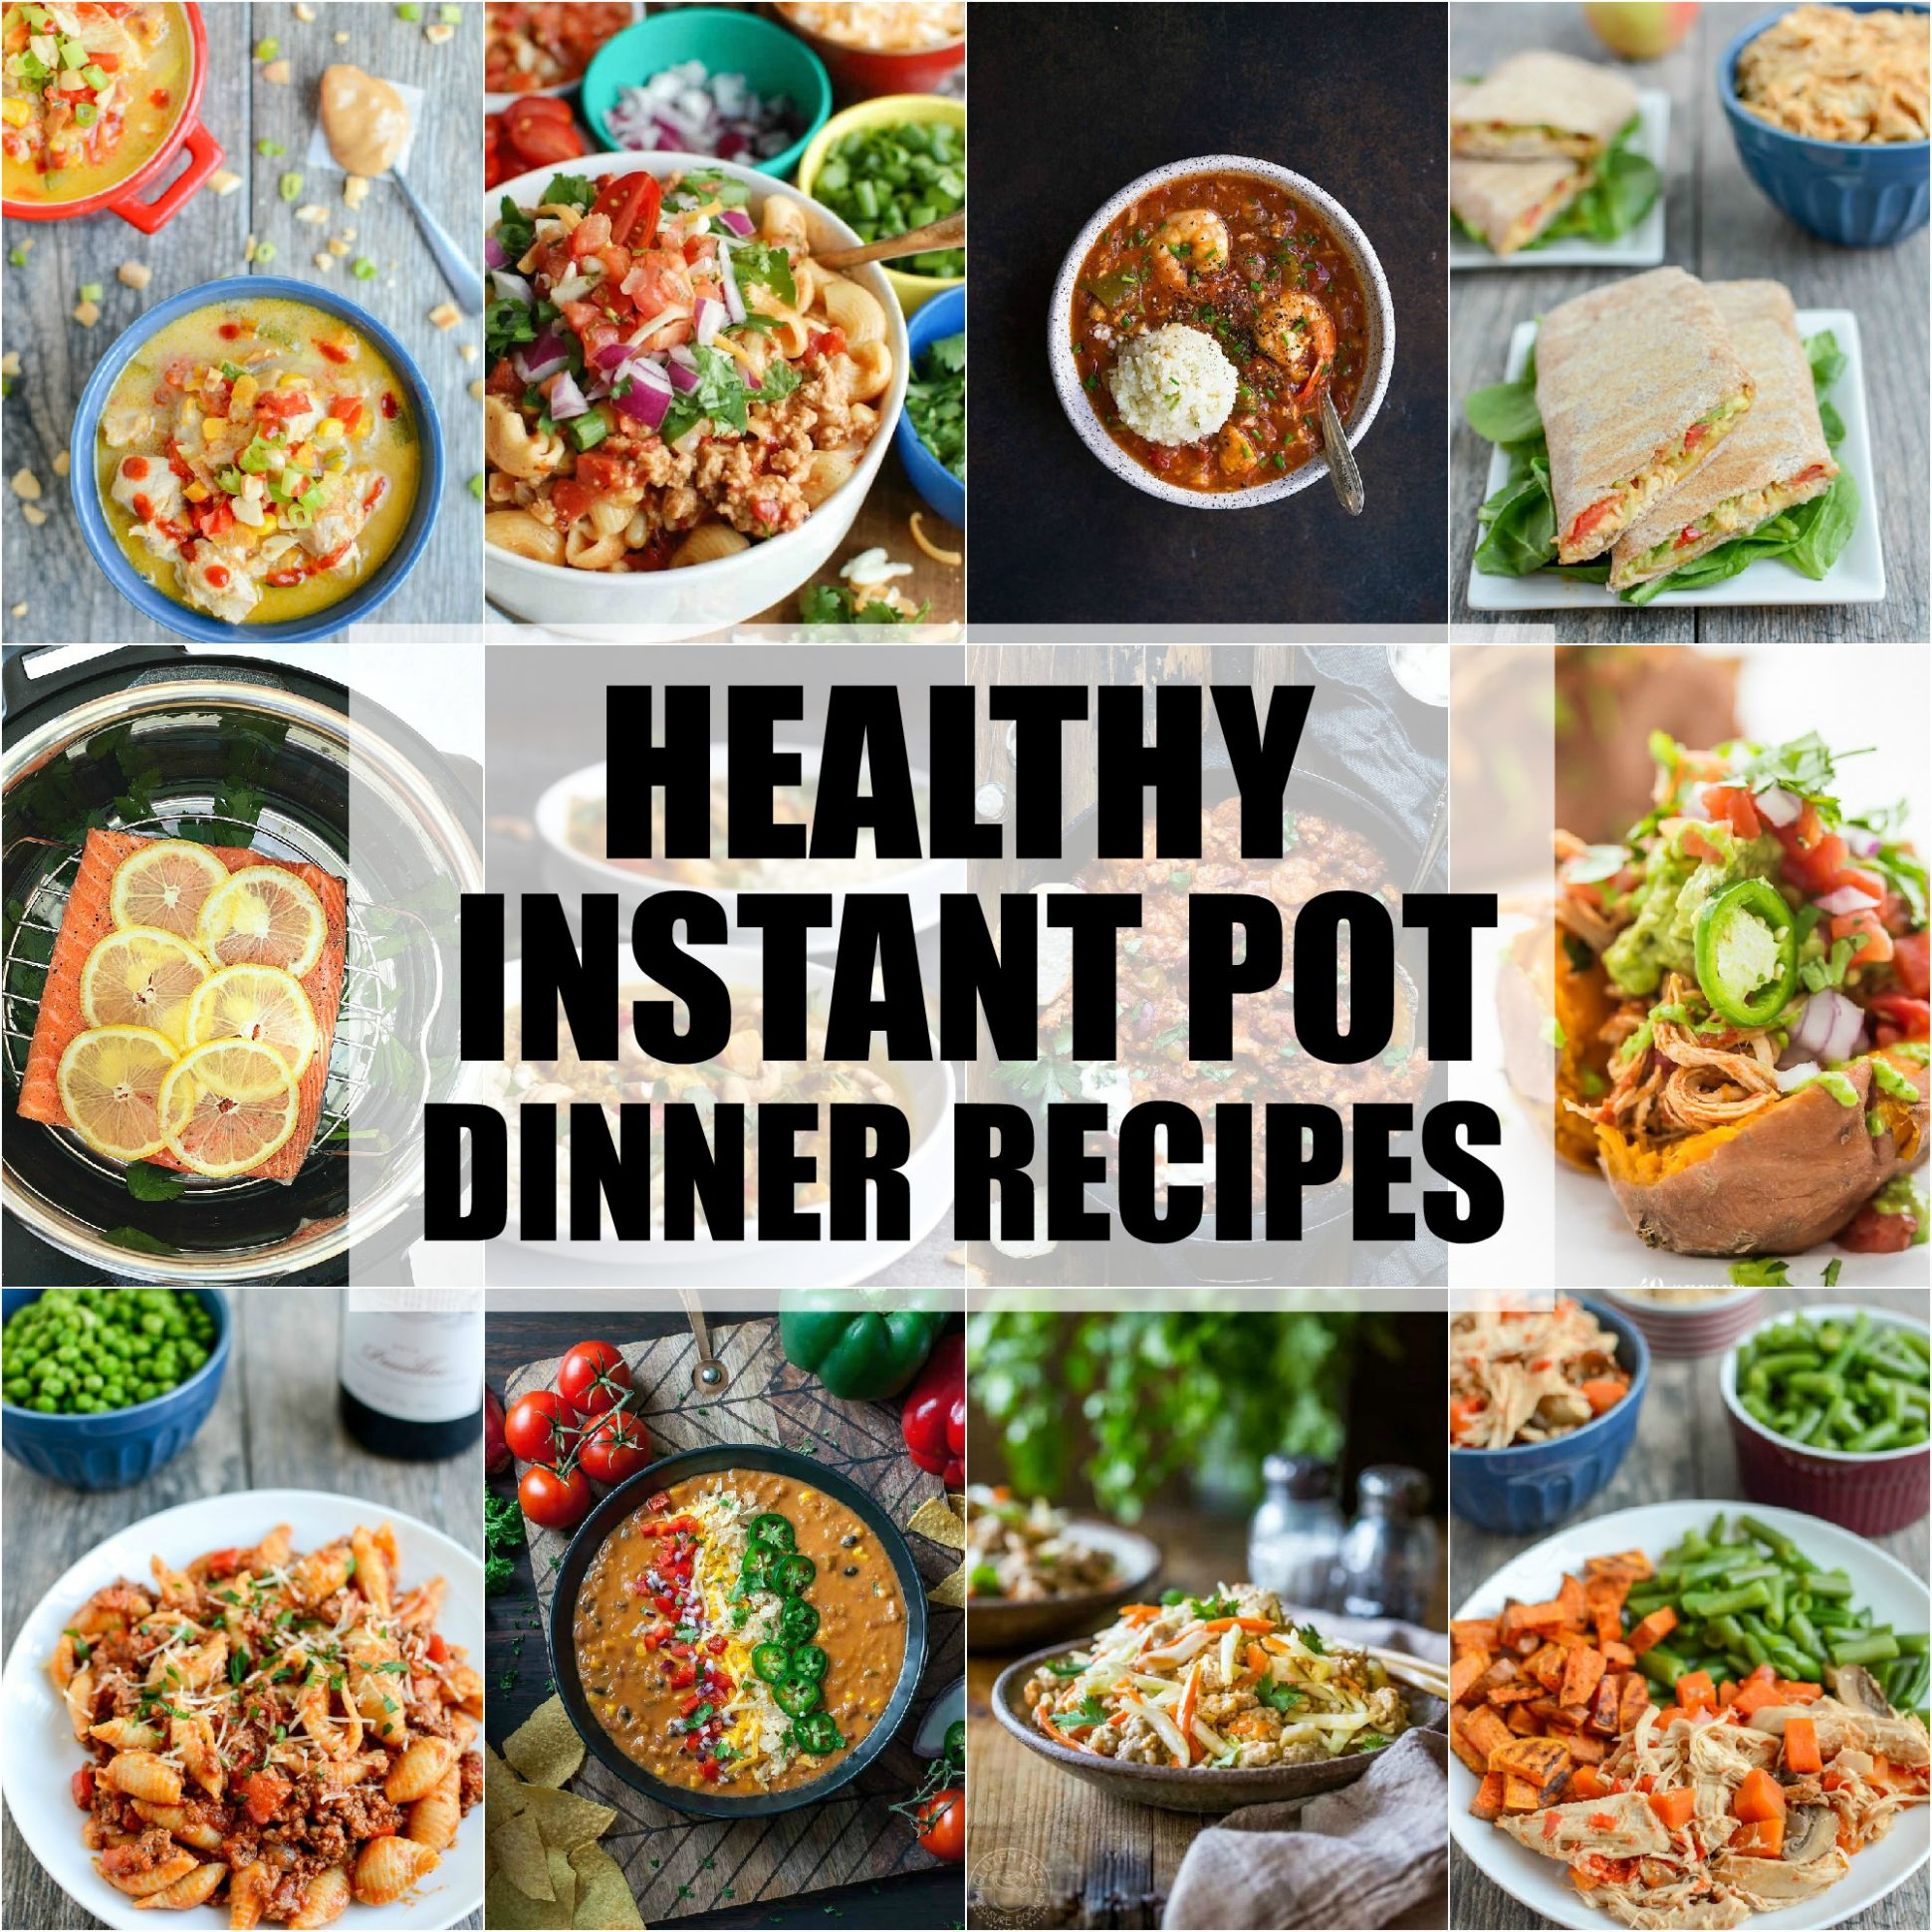 Healthy Instant Pot Dinner Recipes | The Lean Green Bean - Healthy Recipes Instant Pot